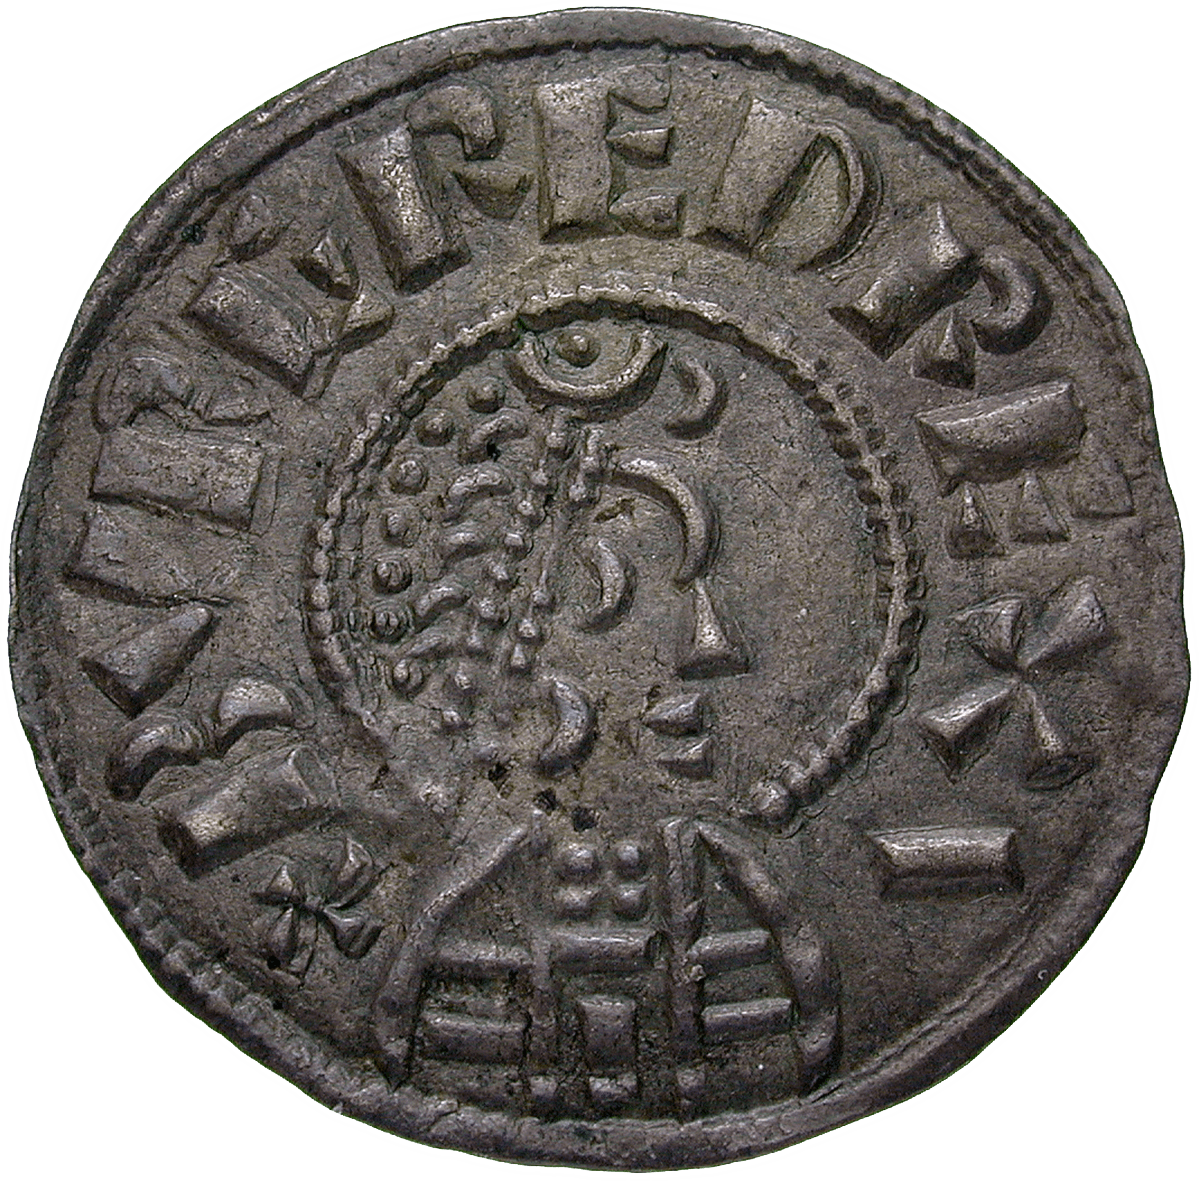 Britain, Kingdom of Mercia, Burgred, Penny (obverse)